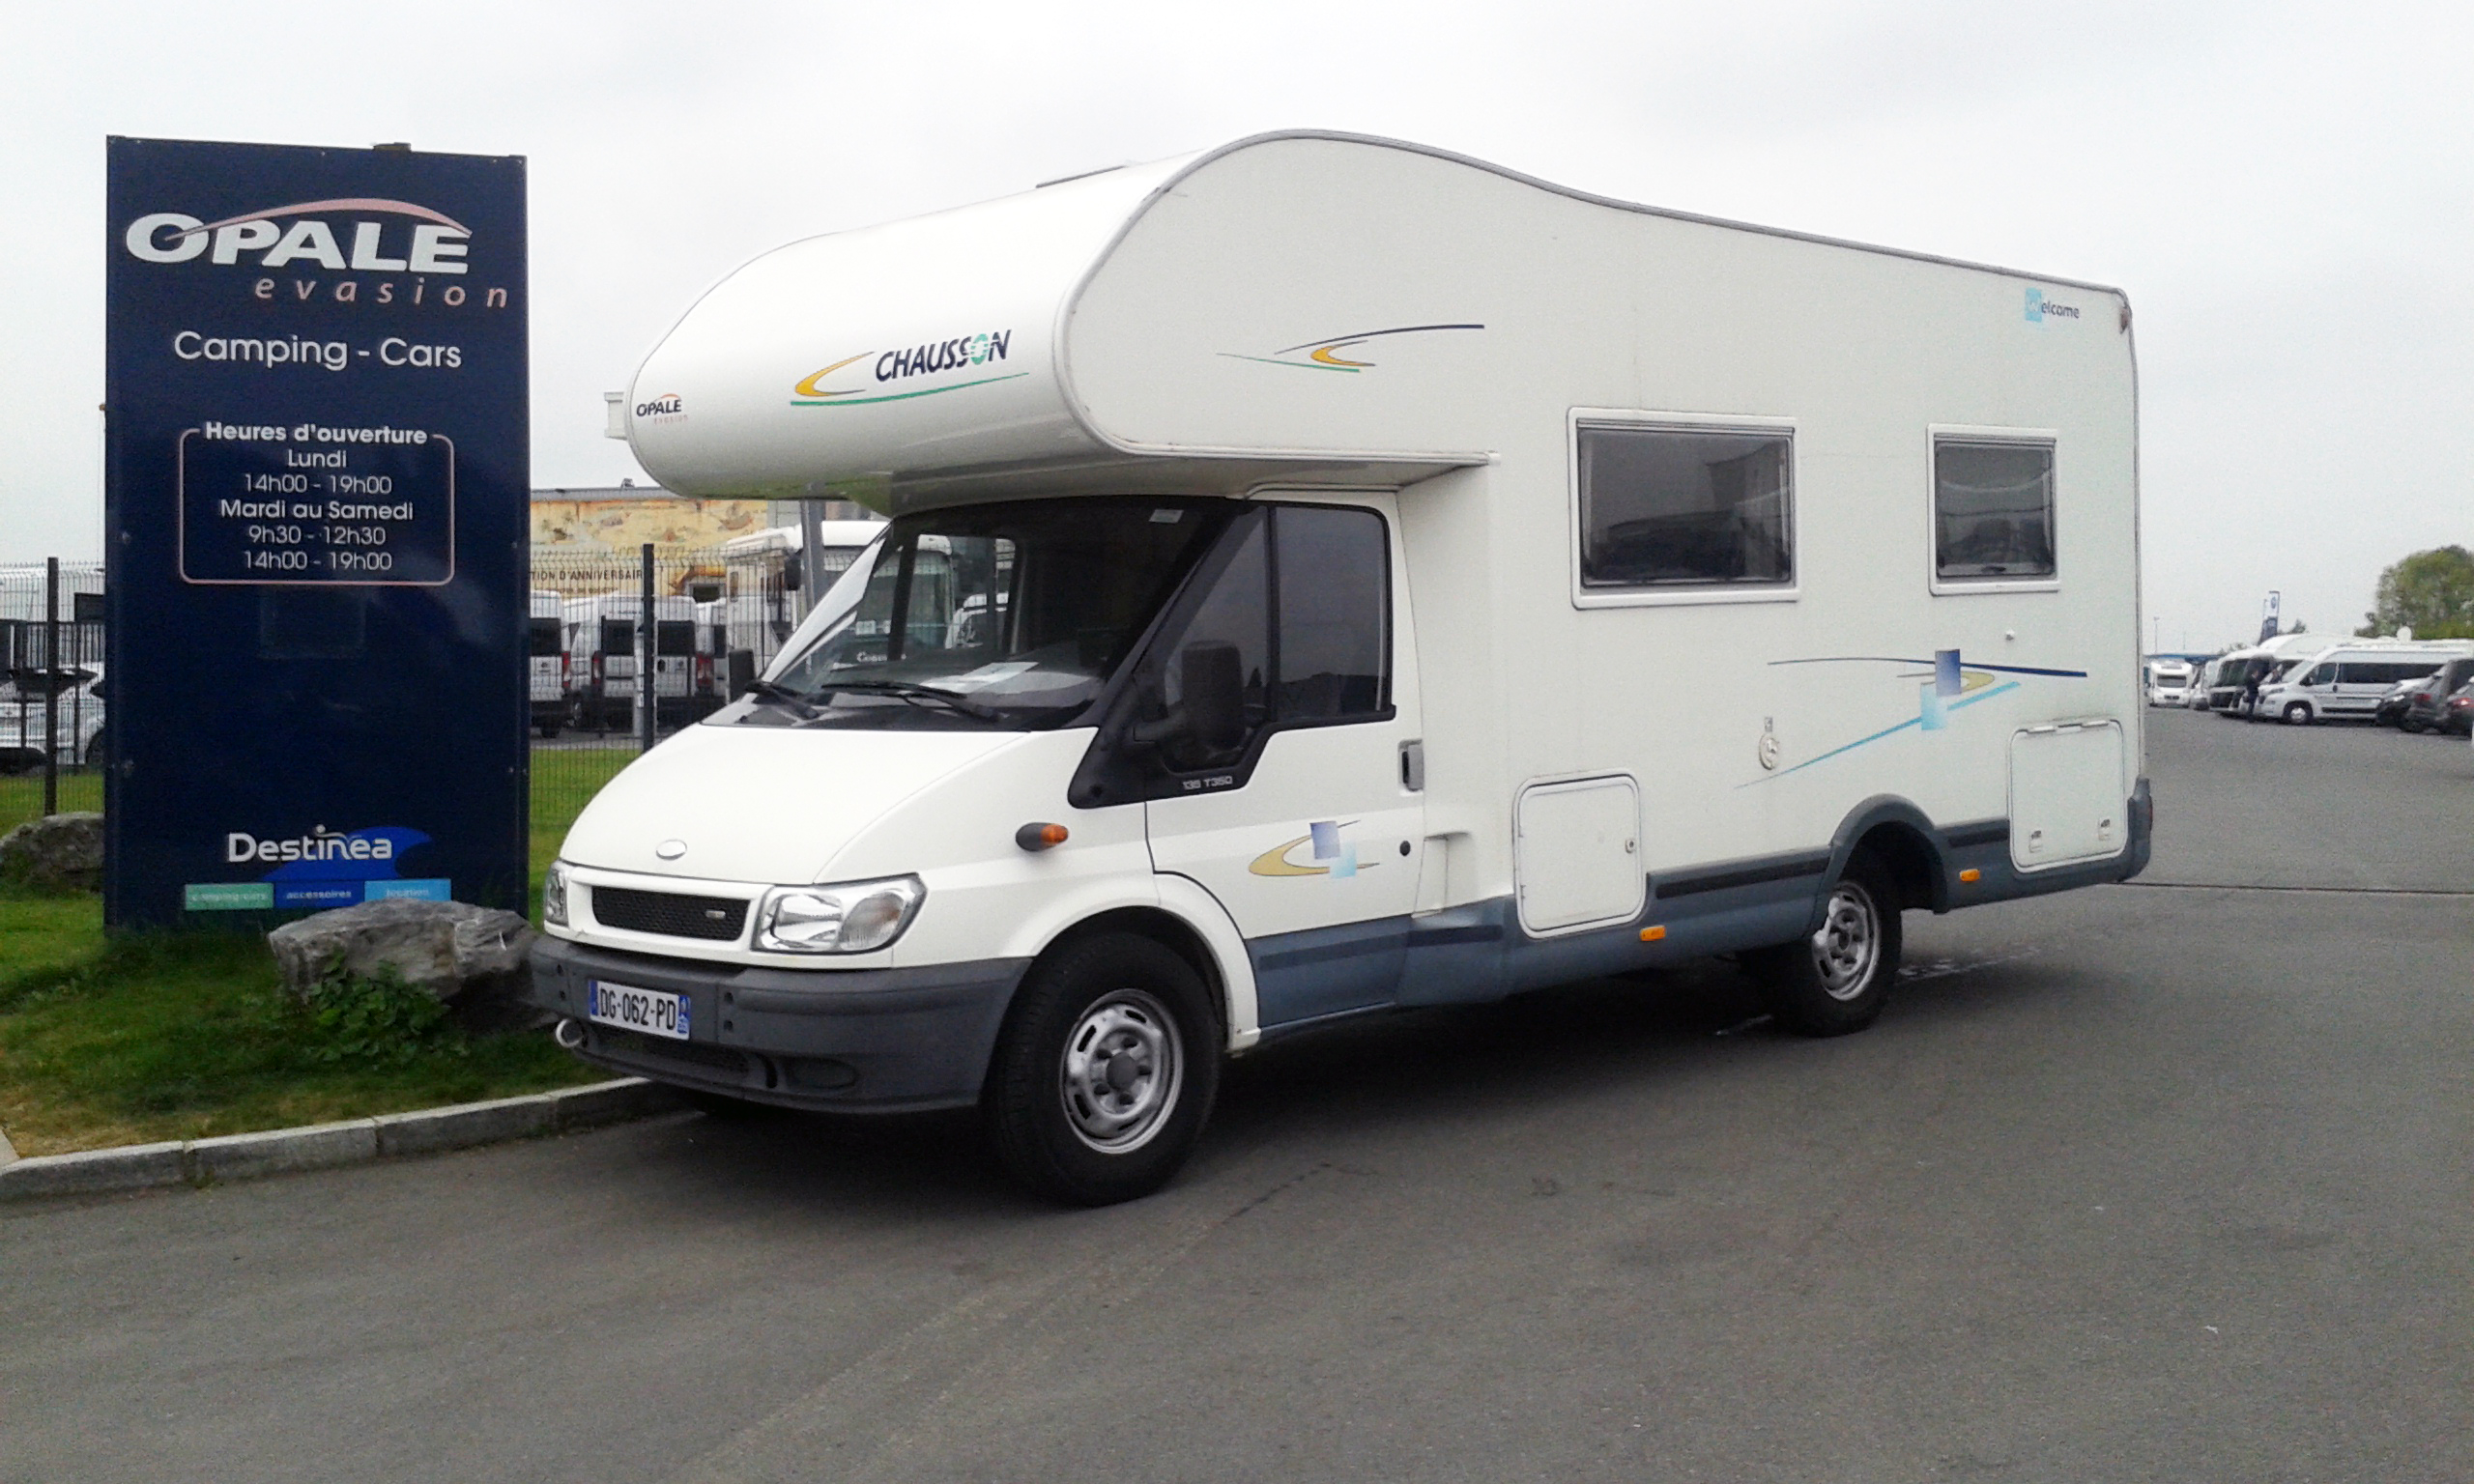 Vente camping car occasion allemagne